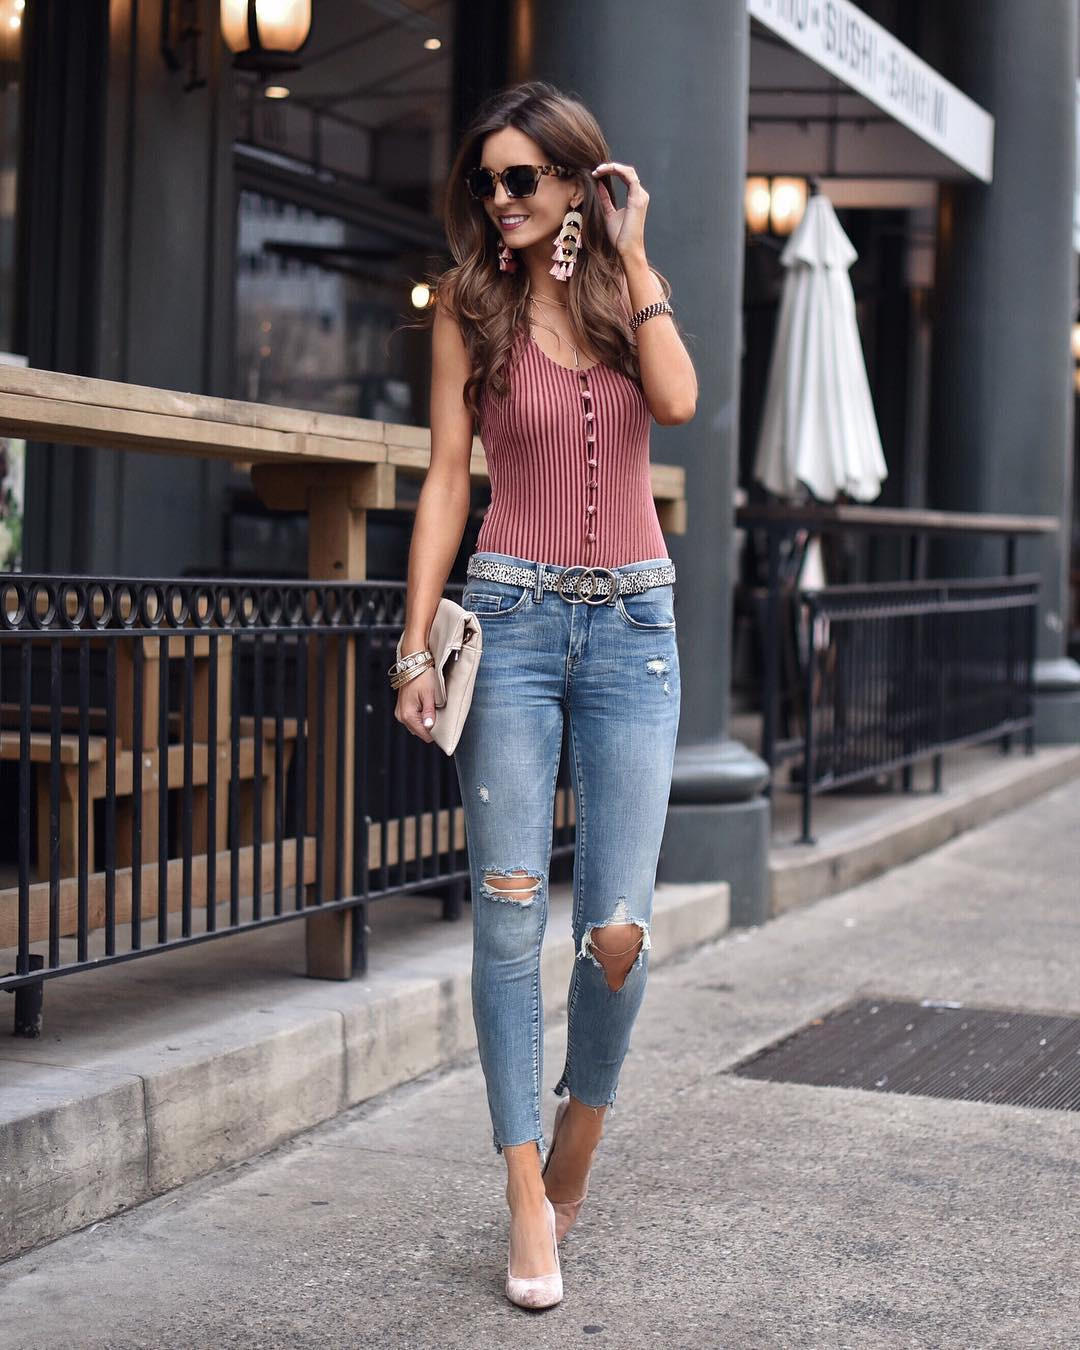 Spring staples Denim Bodysuits and Statement earrings Link in profilehellip